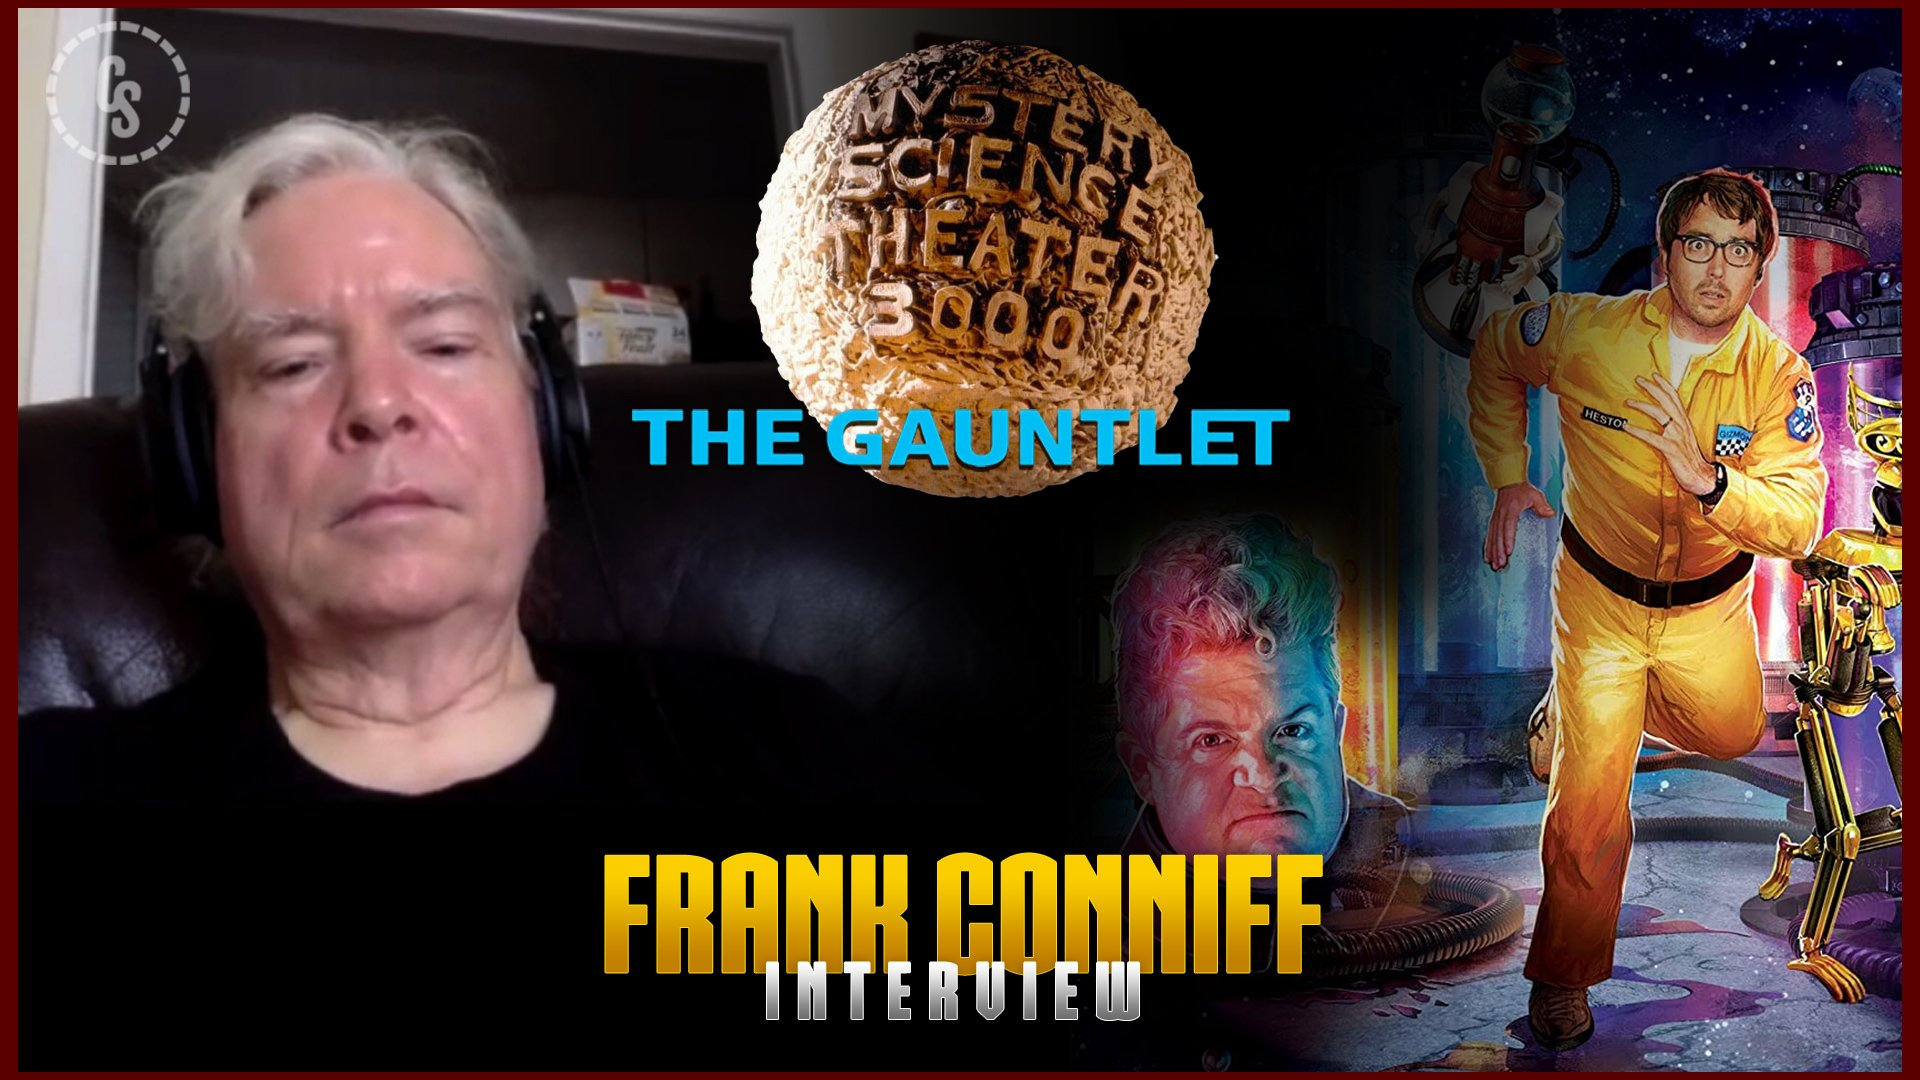 CS Video: Mystery Science Theater 3000's Frank Conniff on Glen or Glenda